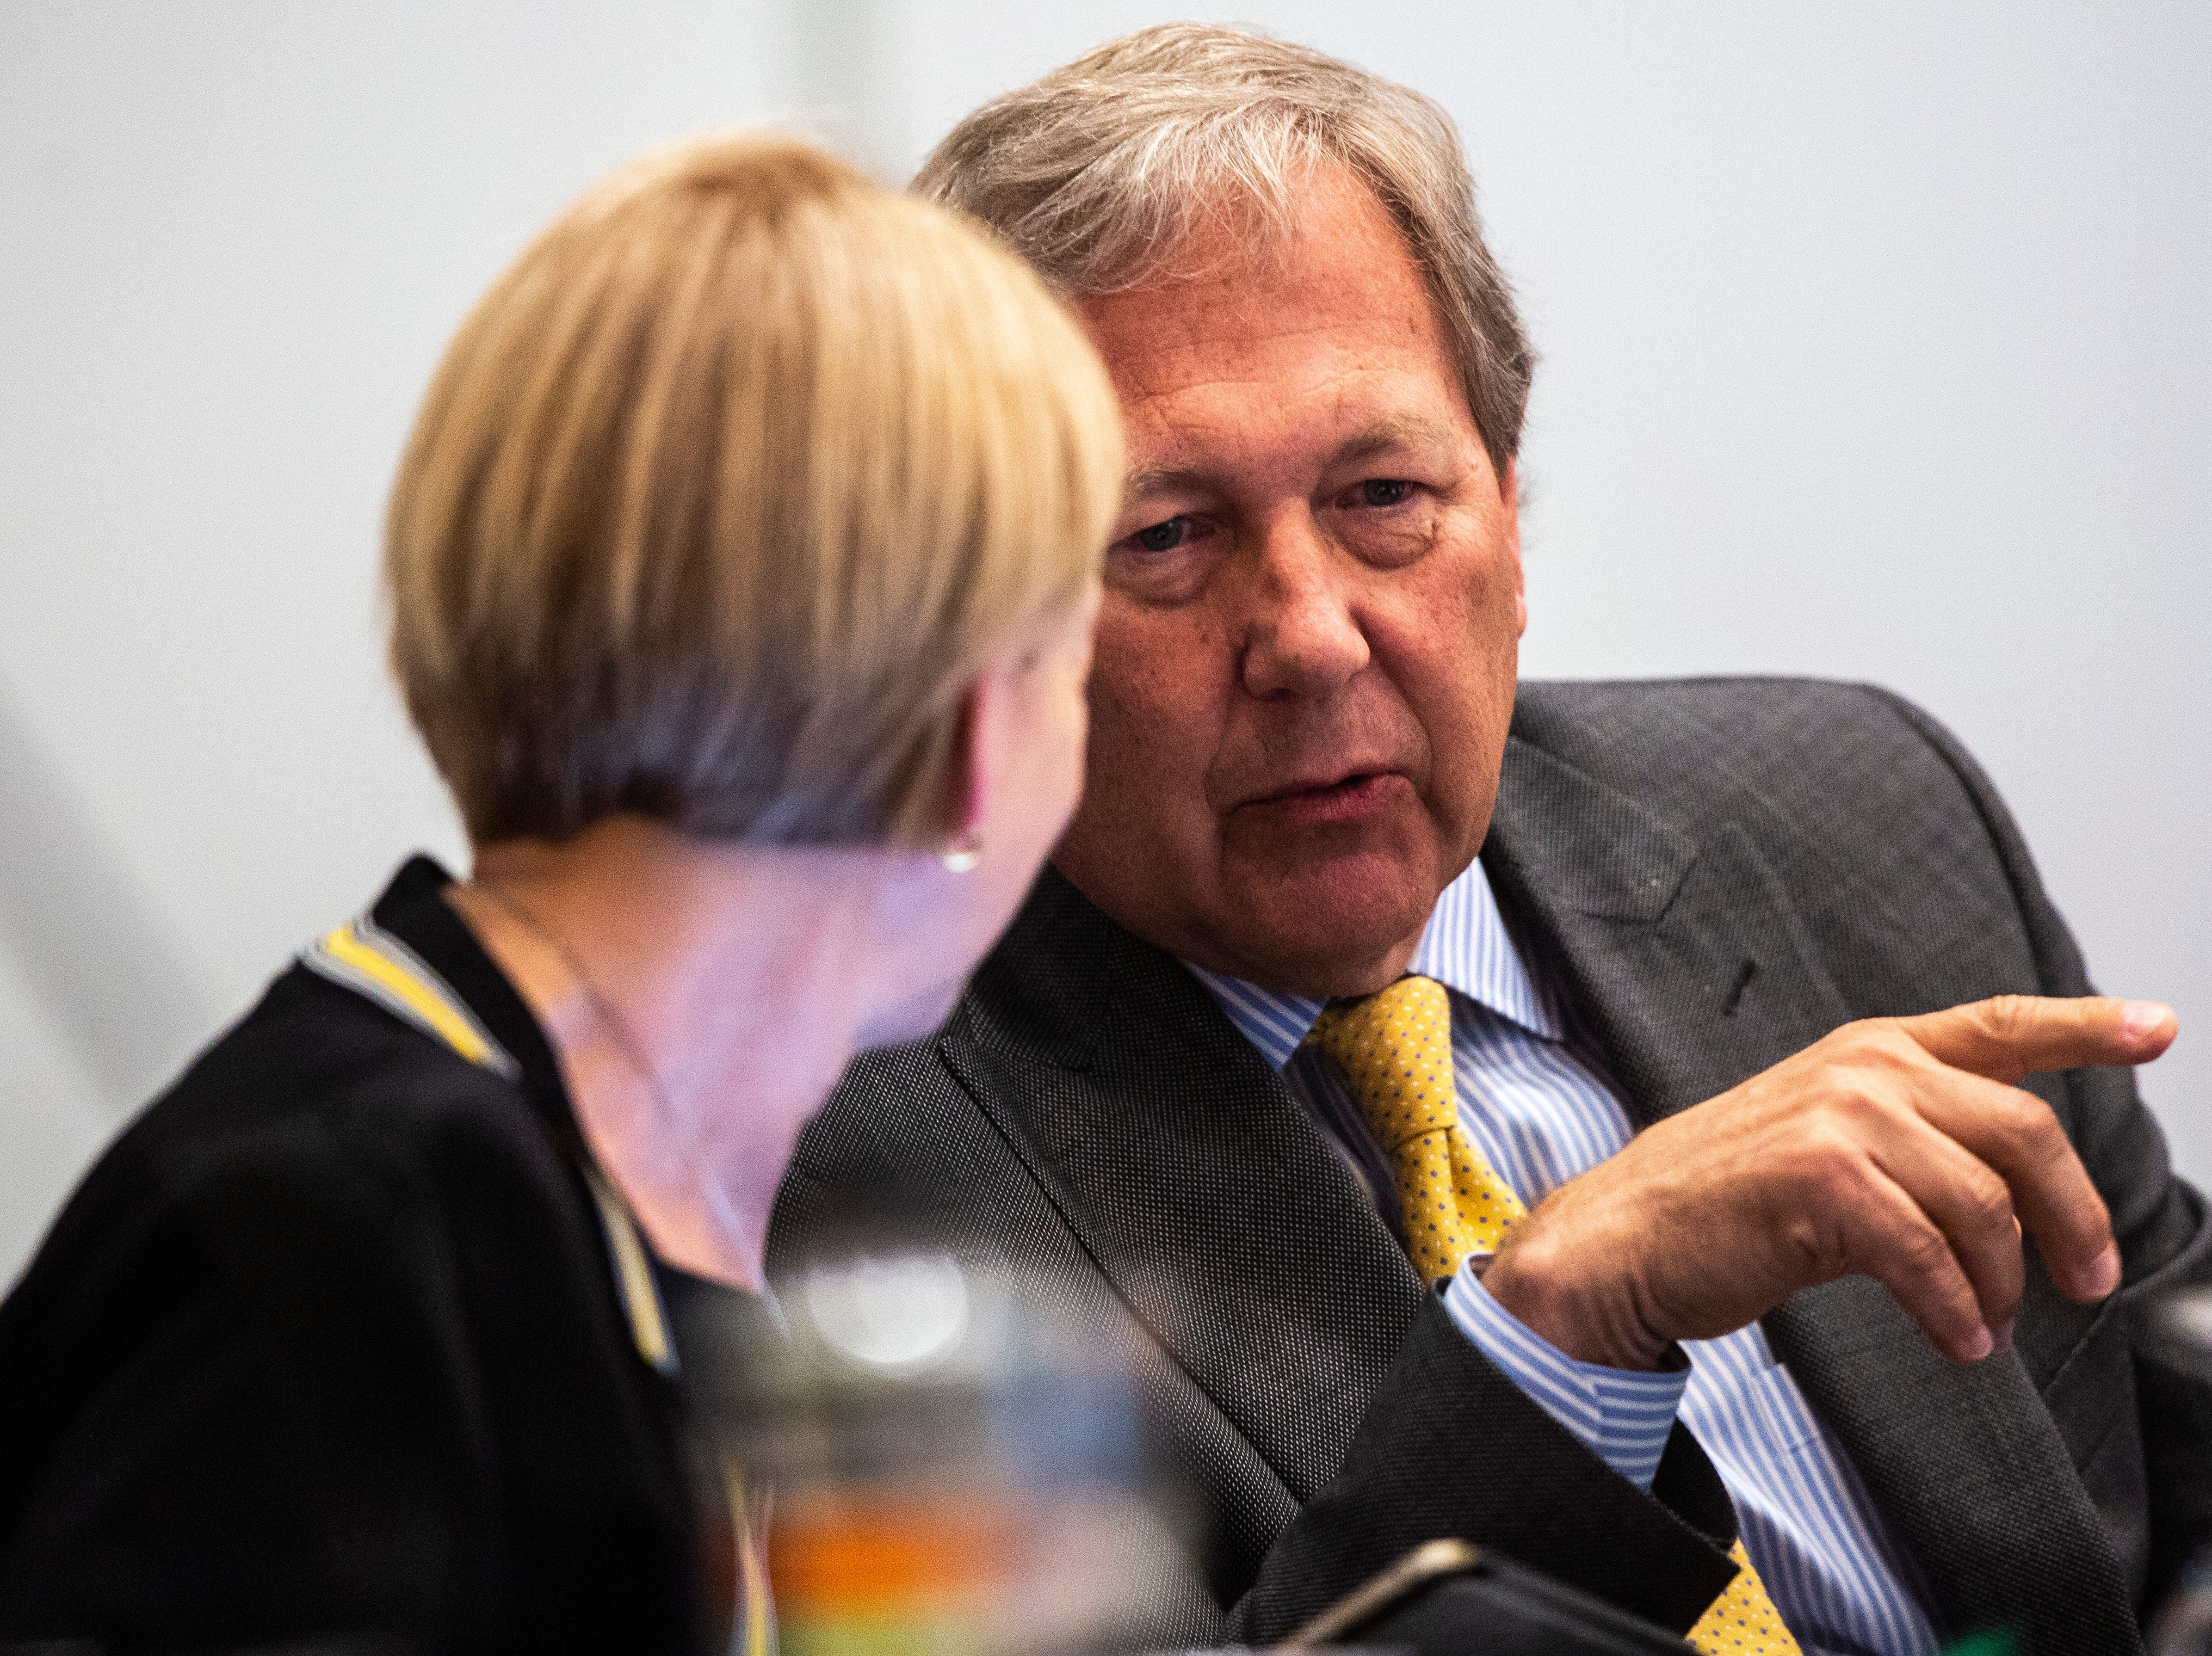 University of Iowa President J. Bruce Harrled, right, speaks with Interim Provost Sue Curry during an Iowa Board of Regents meeting, Thursday, April 18, 2019, in the Levitt Center on the University of Iowa campus in Iowa City, Iowa.